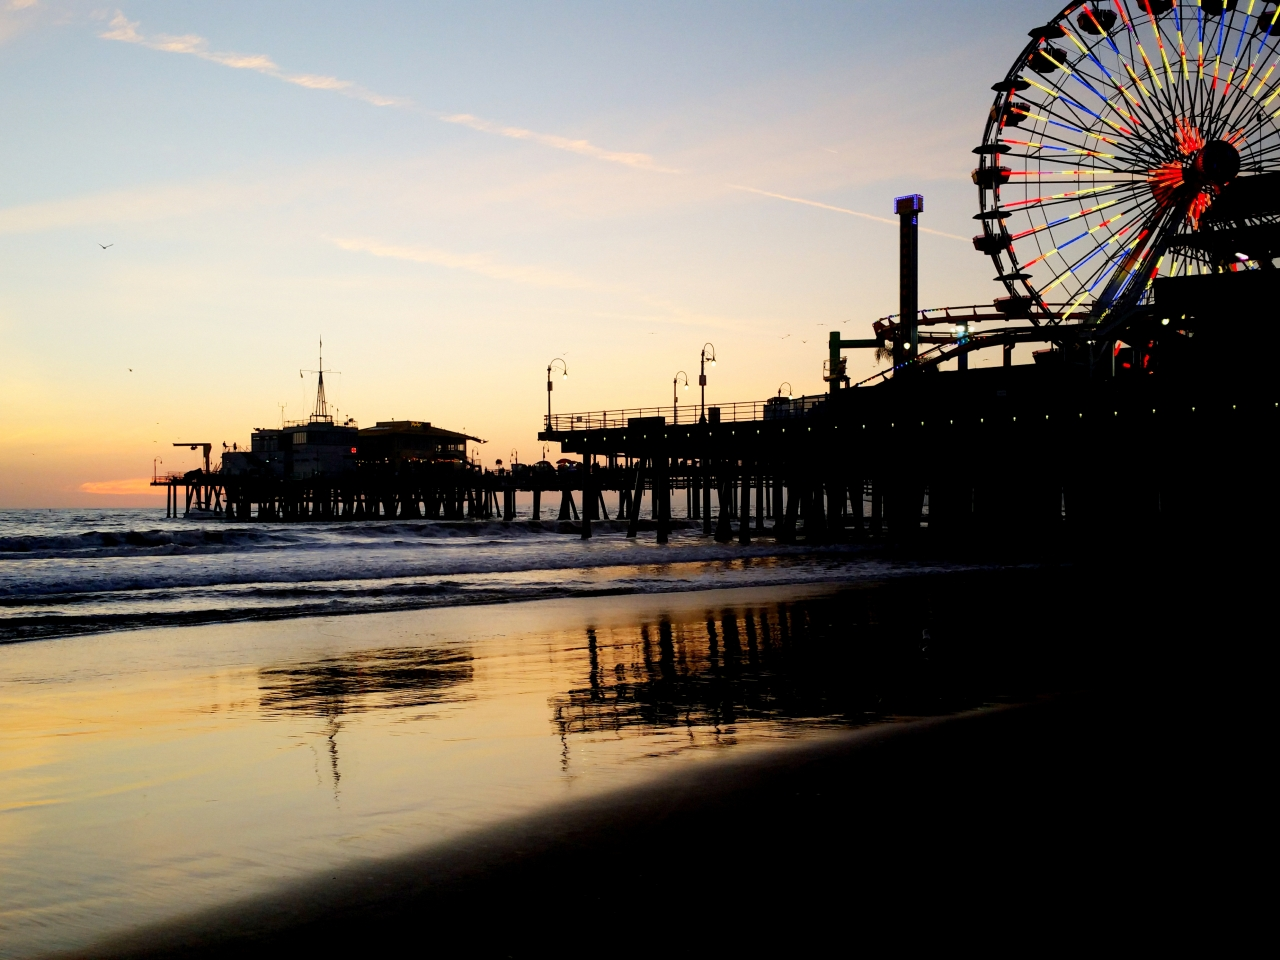 The Pacific ocean and Santa Monica Pier at dusk